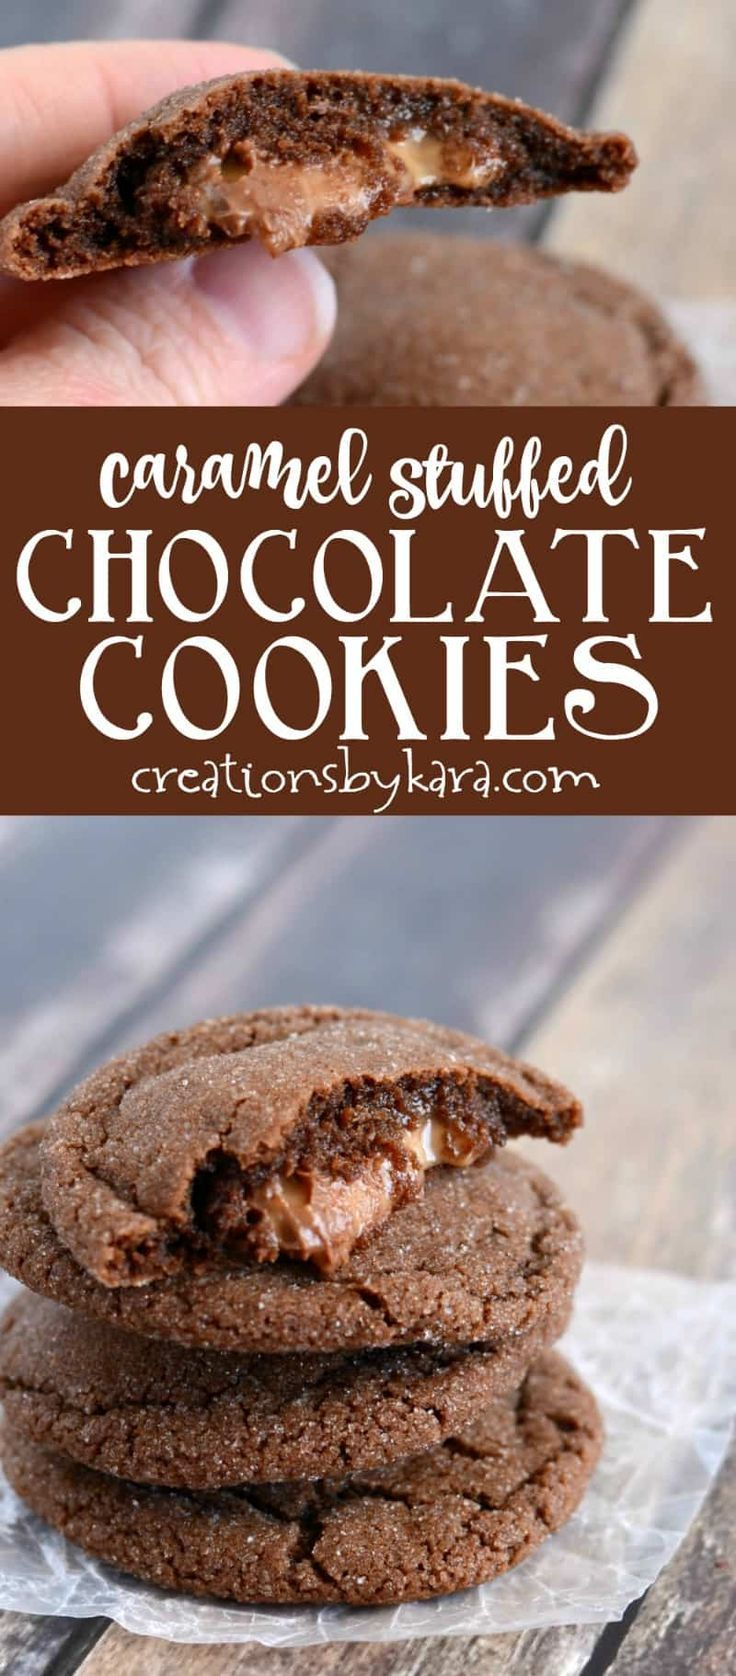 Soft and chewy chocolate Rolo cookies with an ooey gooey caramel filling. A perfect cookie recipe for chocolate caramel fans! via @creationsbykara.com